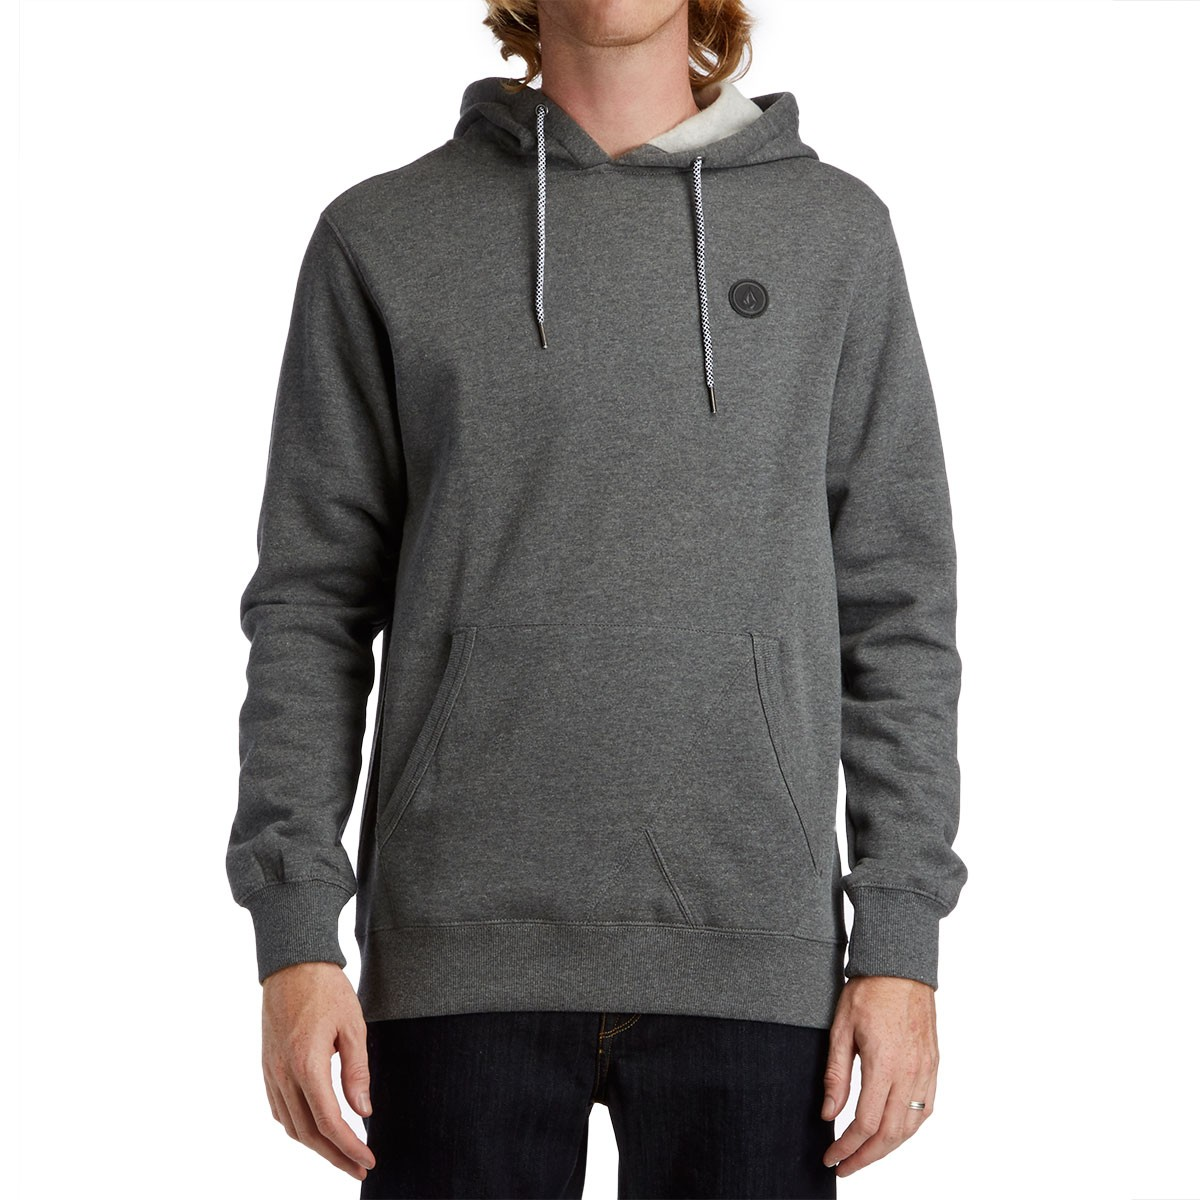 Single Stone Pullover Hoodie - Dark Grey